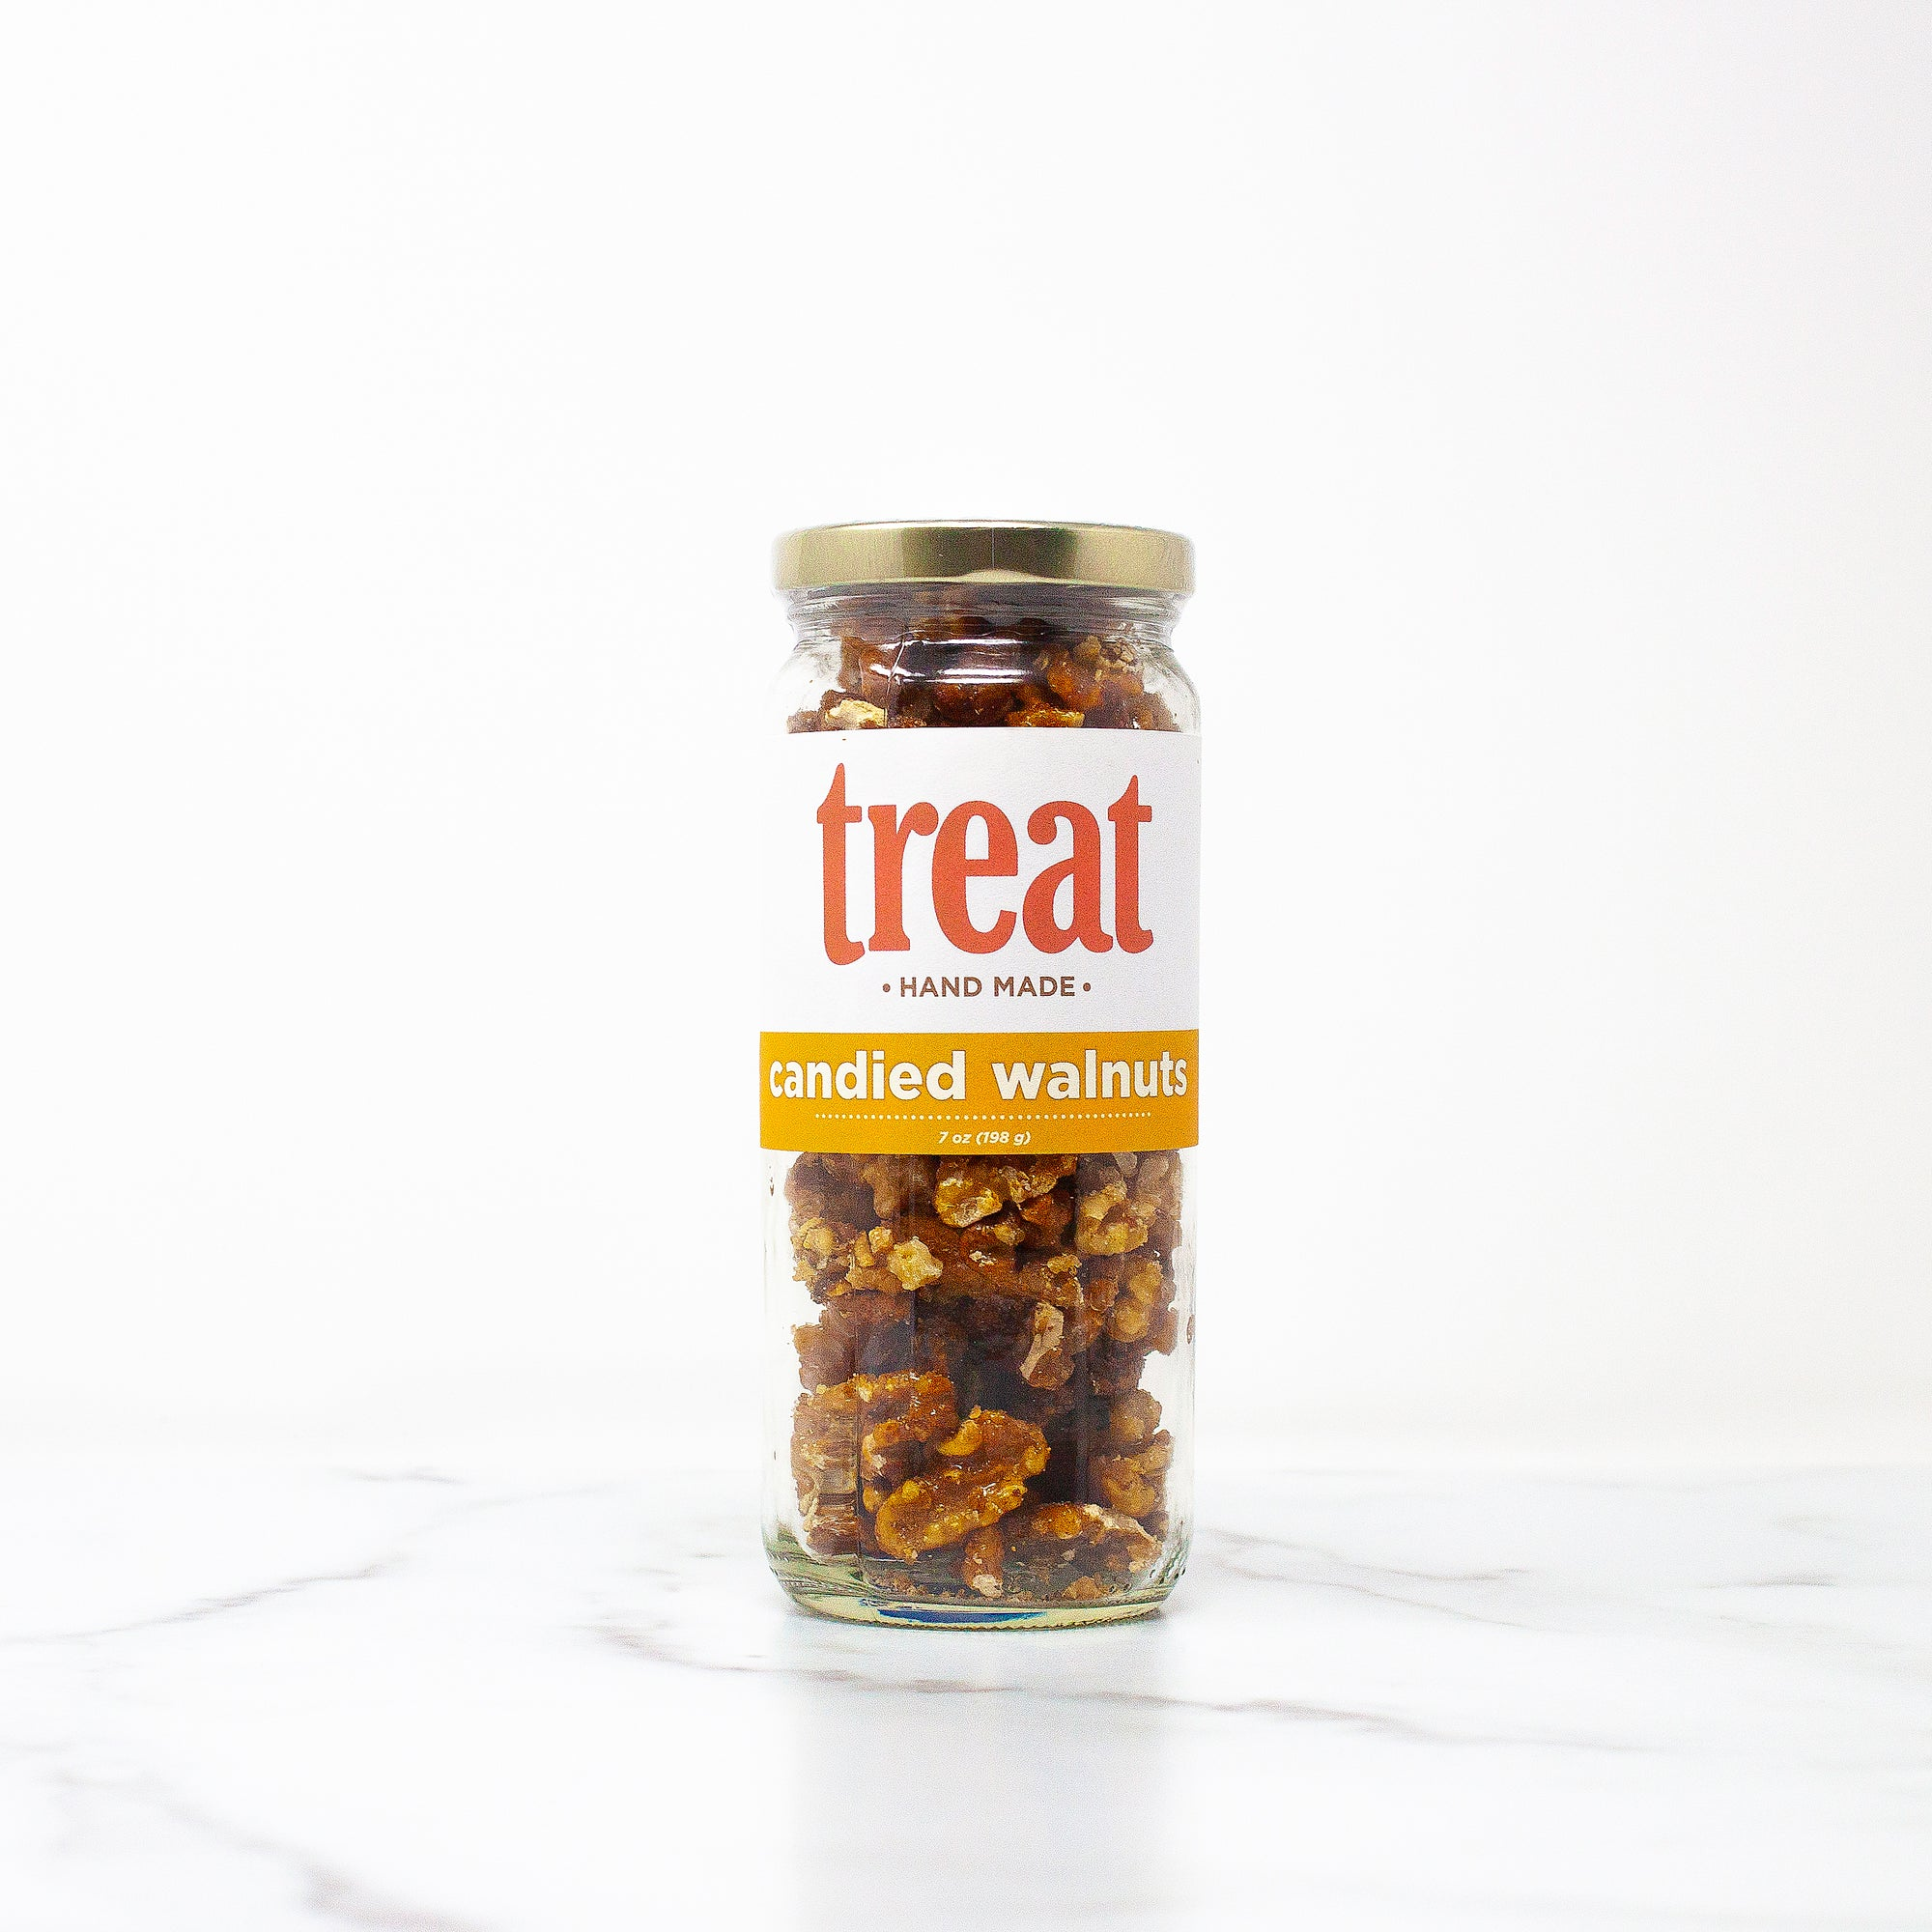 7 oz Deluxe Jar of Candied Walnuts from Treat